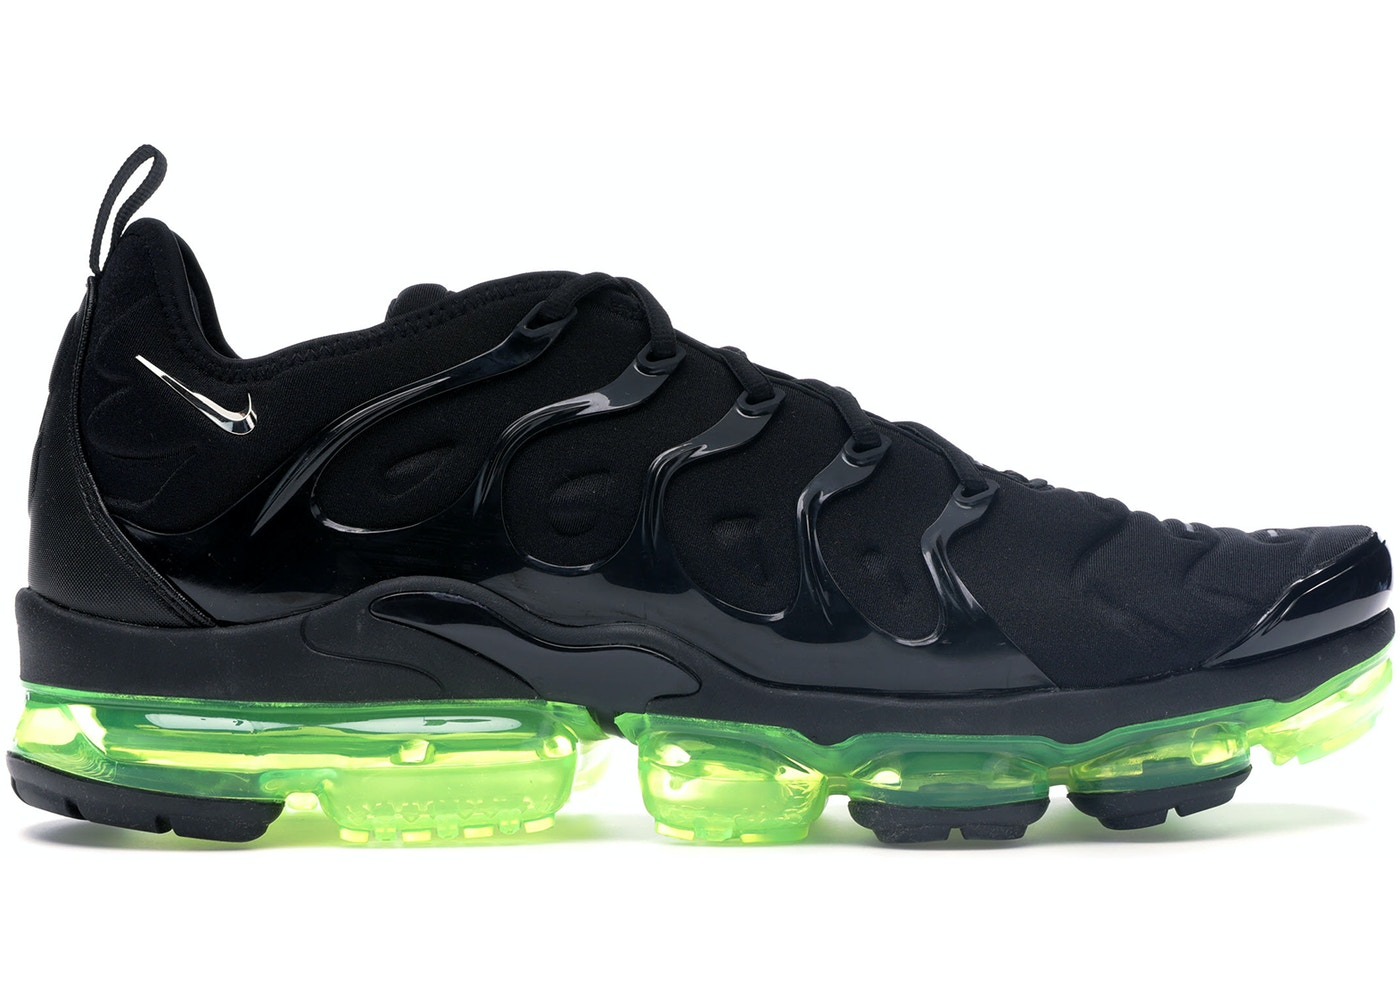 save off 61f7a d0e5a Air VaporMax Plus Black Volt Sole